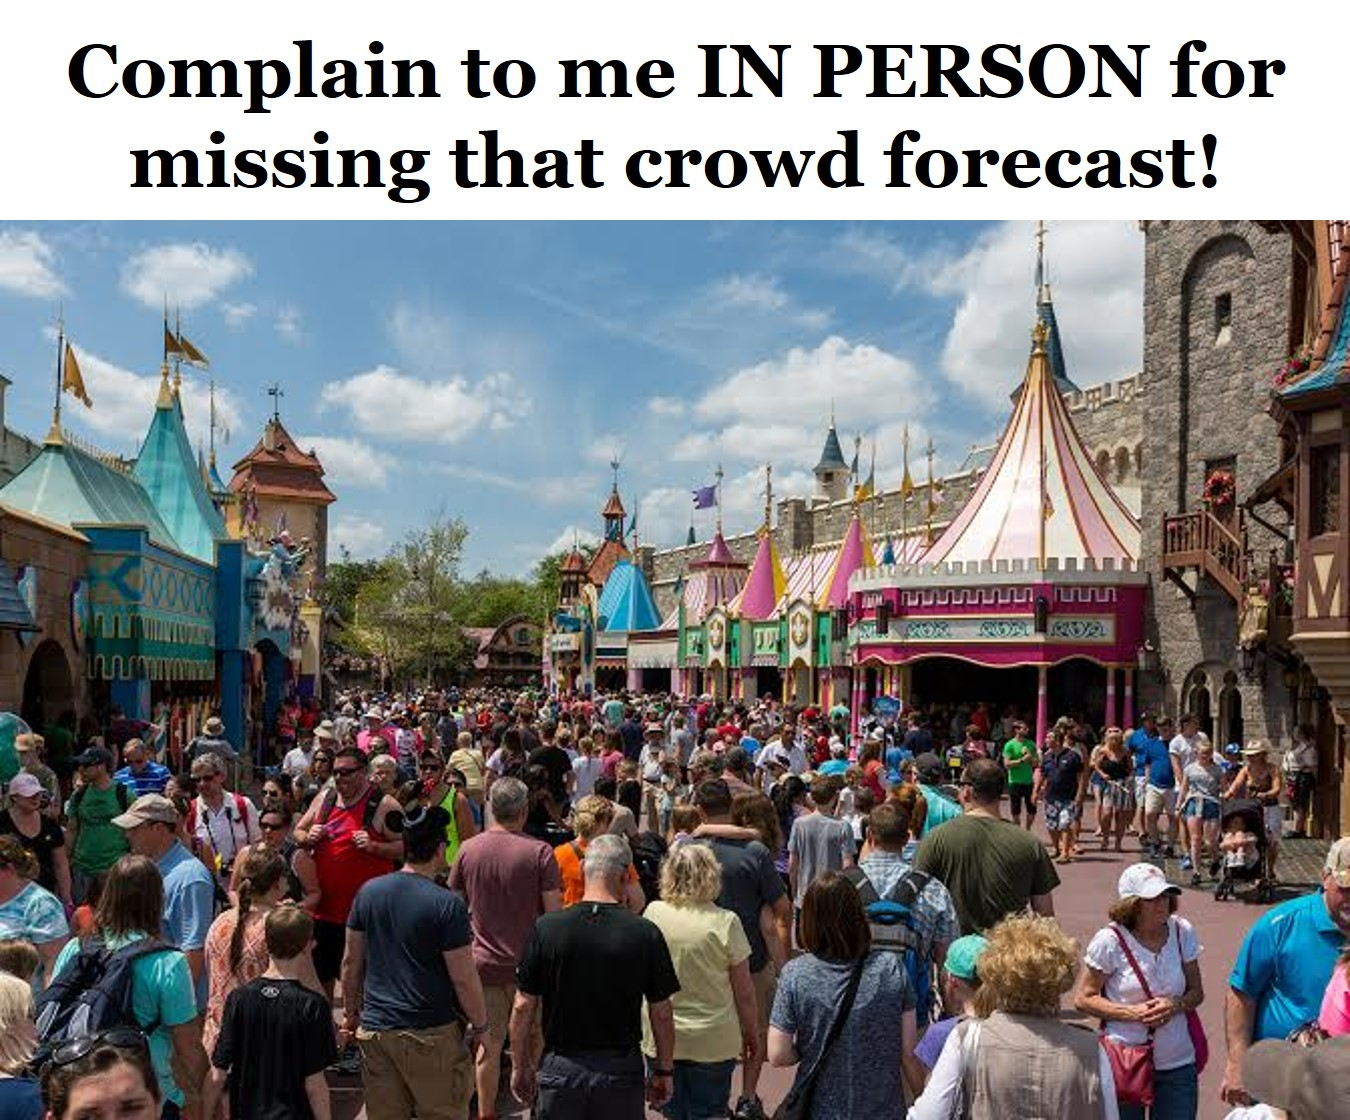 (easyWDW image, used with permission but defaced as I chose)